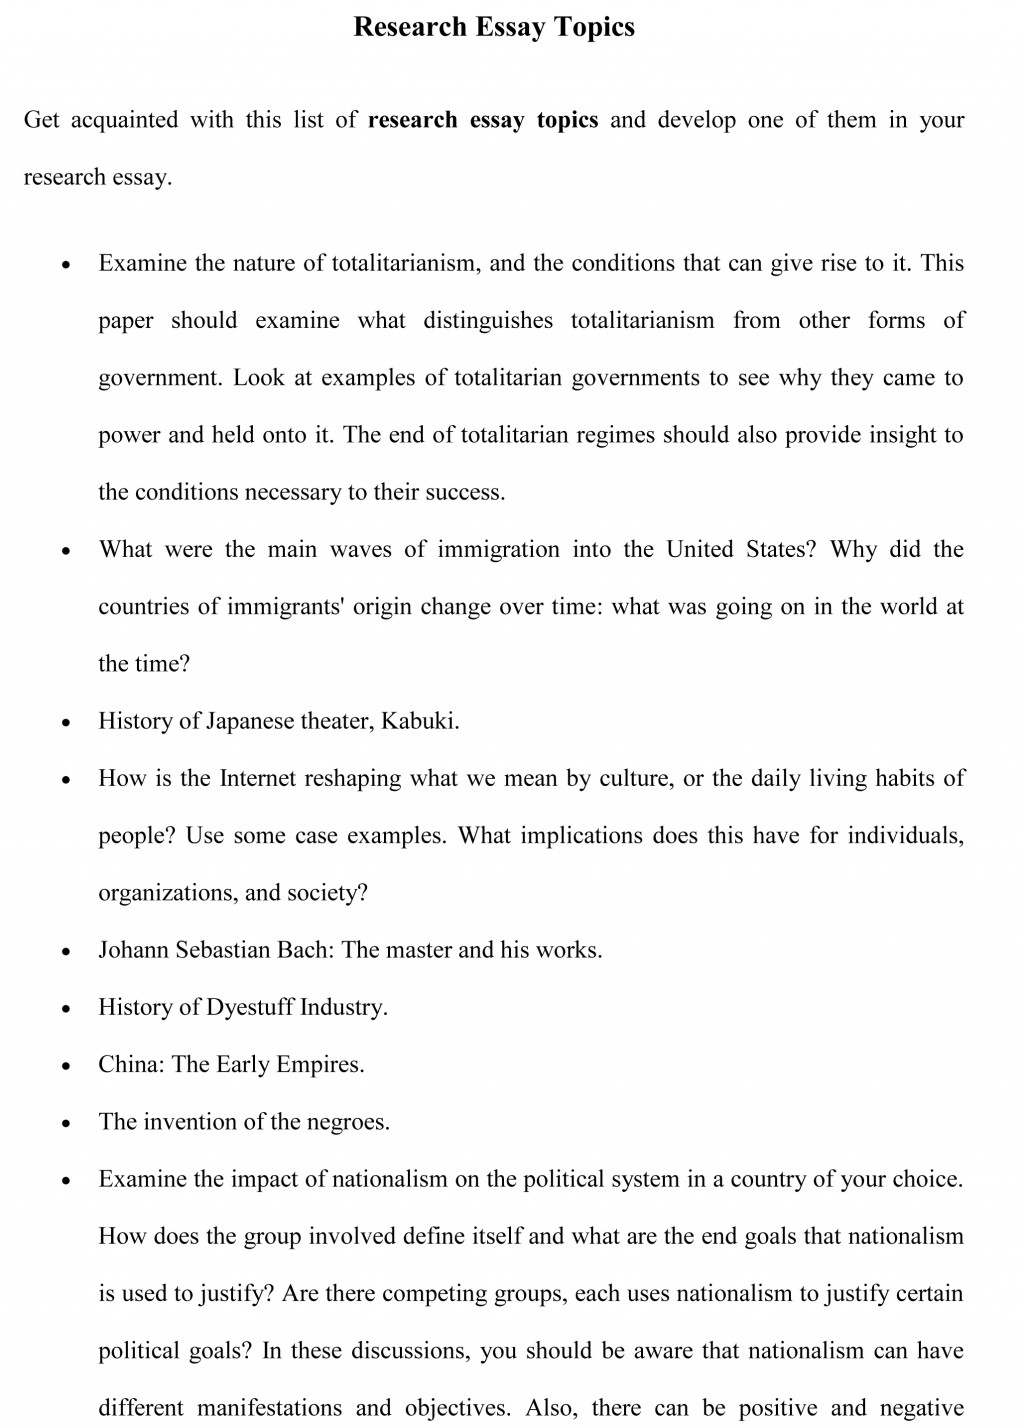 002 Research Essay Topics Sample Shocking Paper Topic Proposal In Education Technology Large